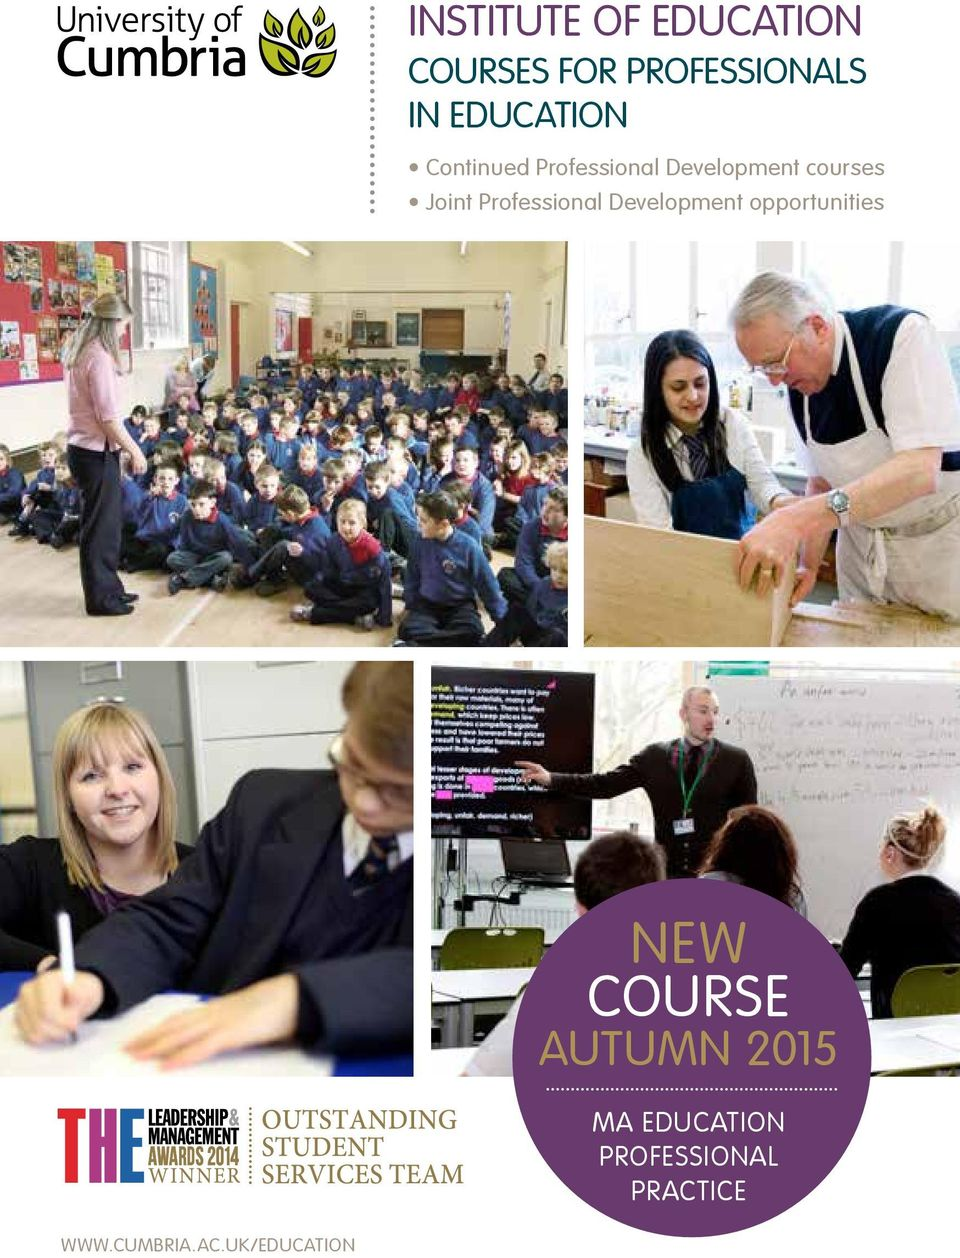 Professional Development opportunities NEW COURSE AUTUMN